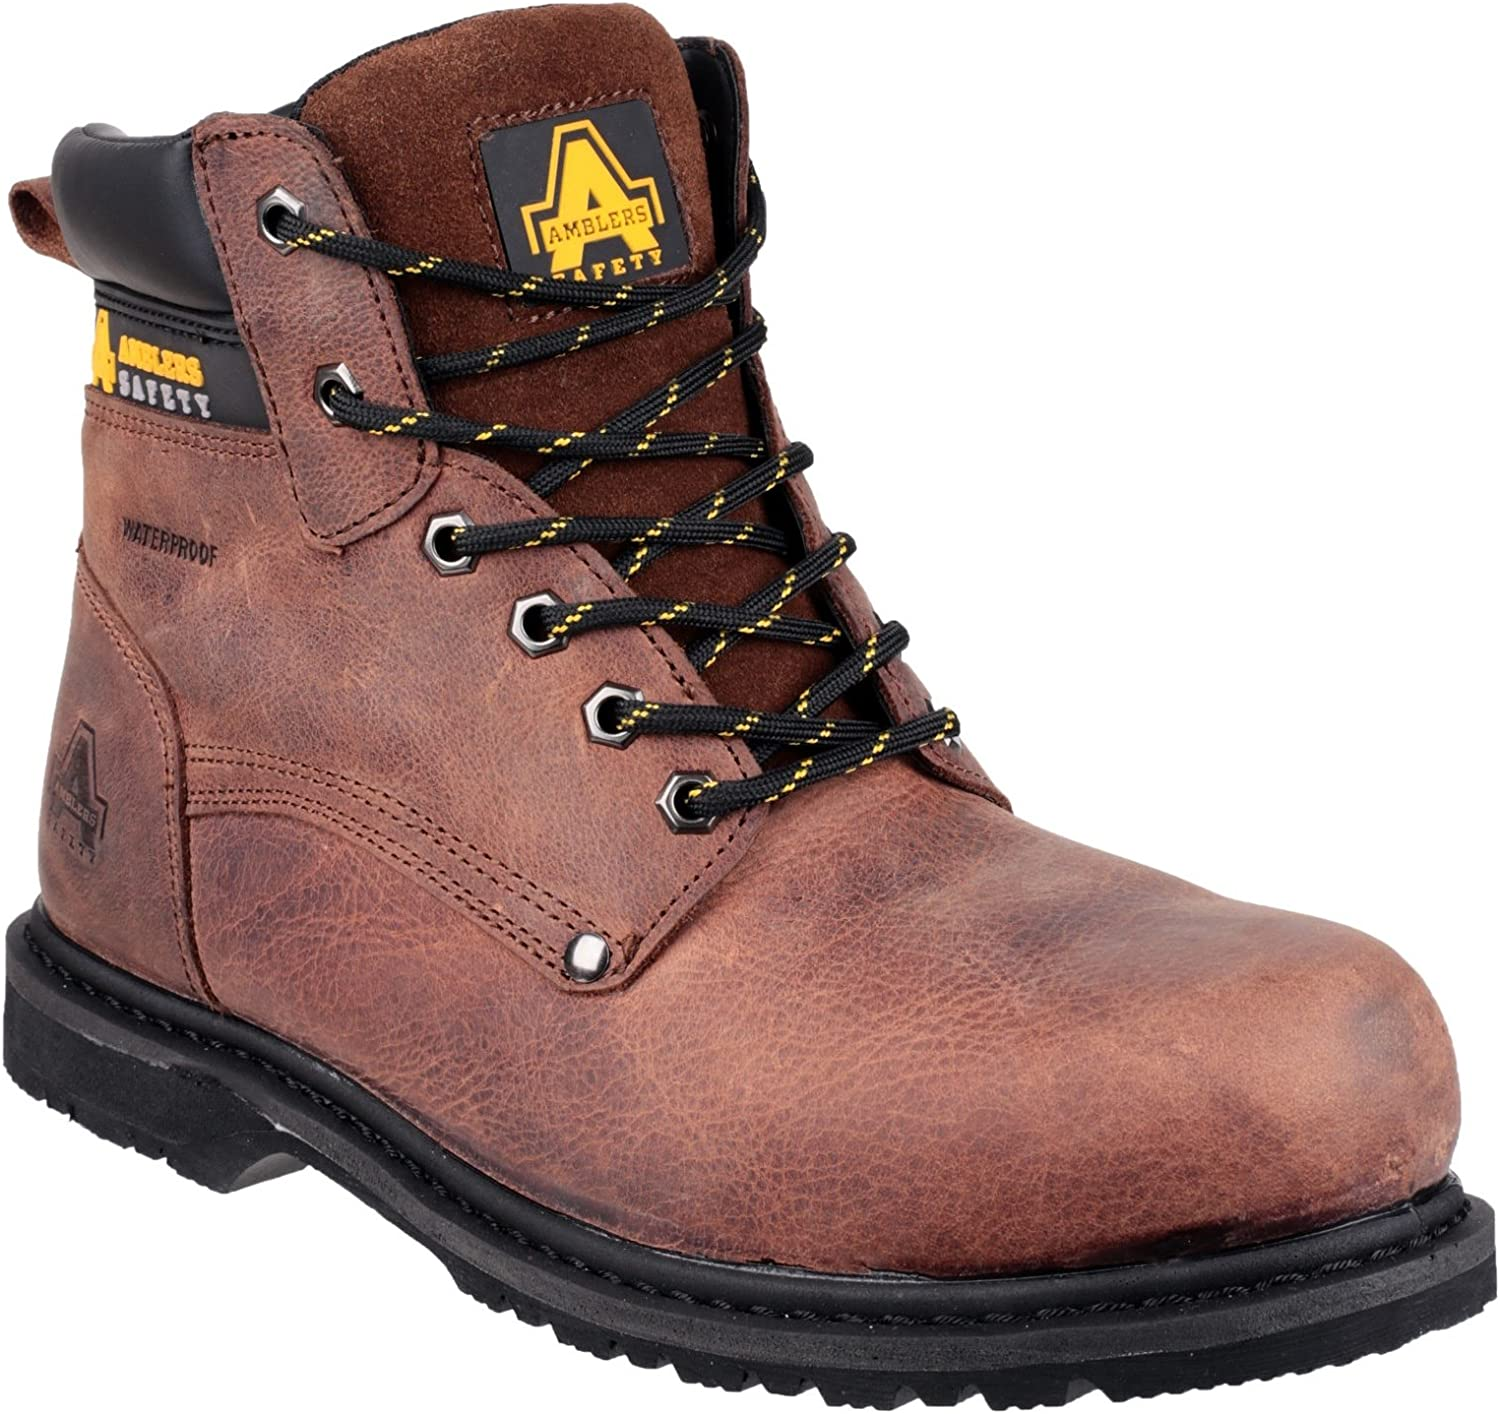 Amblers Safety Mens FS145 Waterproof Welted Lace up Safety Workboot